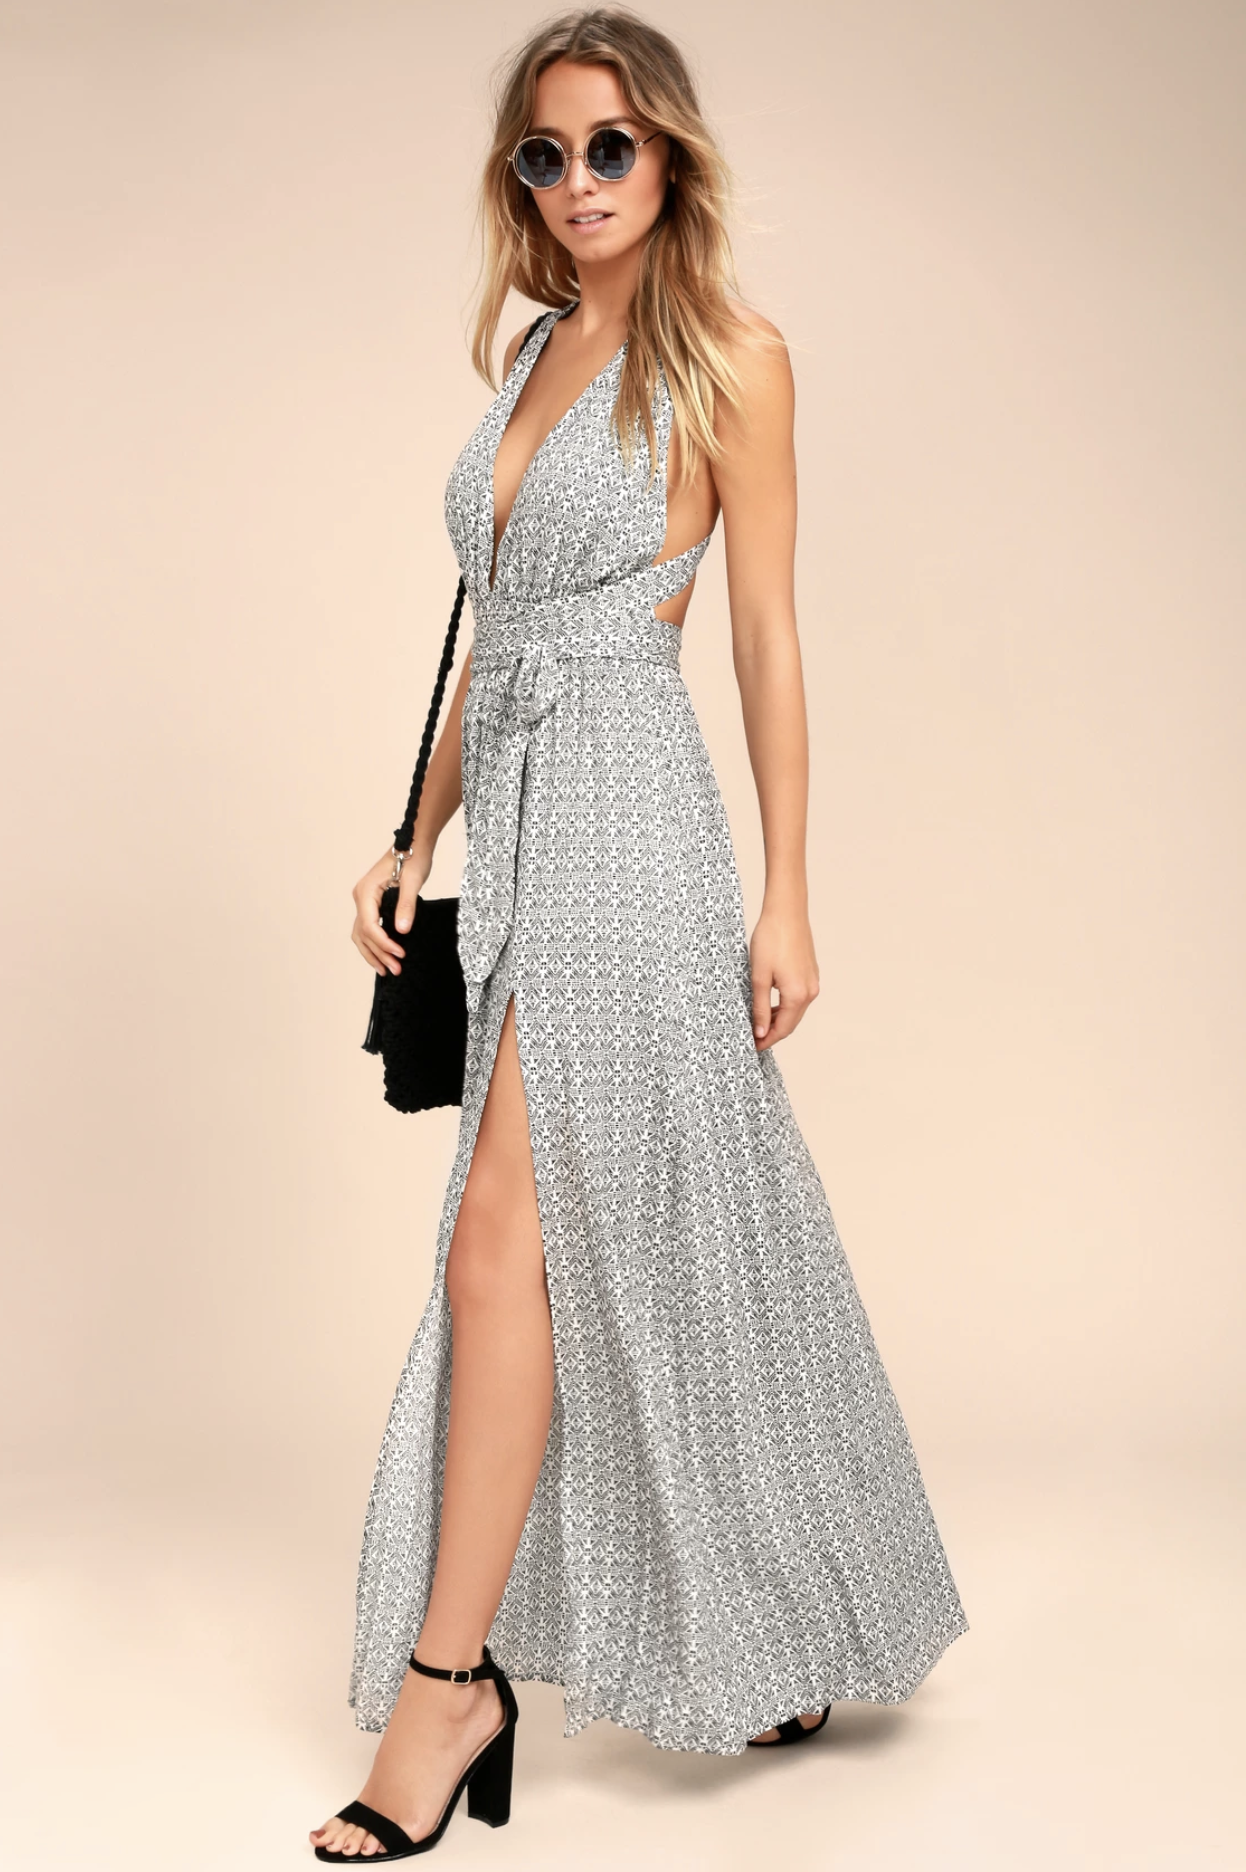 Make a statement in the Lulus Casablanca Queen Black and White Print Maxi Dress! Breezy, black and white print, woven rayon shapes a tying, halter neckline and plunging triangle bodice. Elasticized waist tops a flowy maxi skirt with sultry side slit.